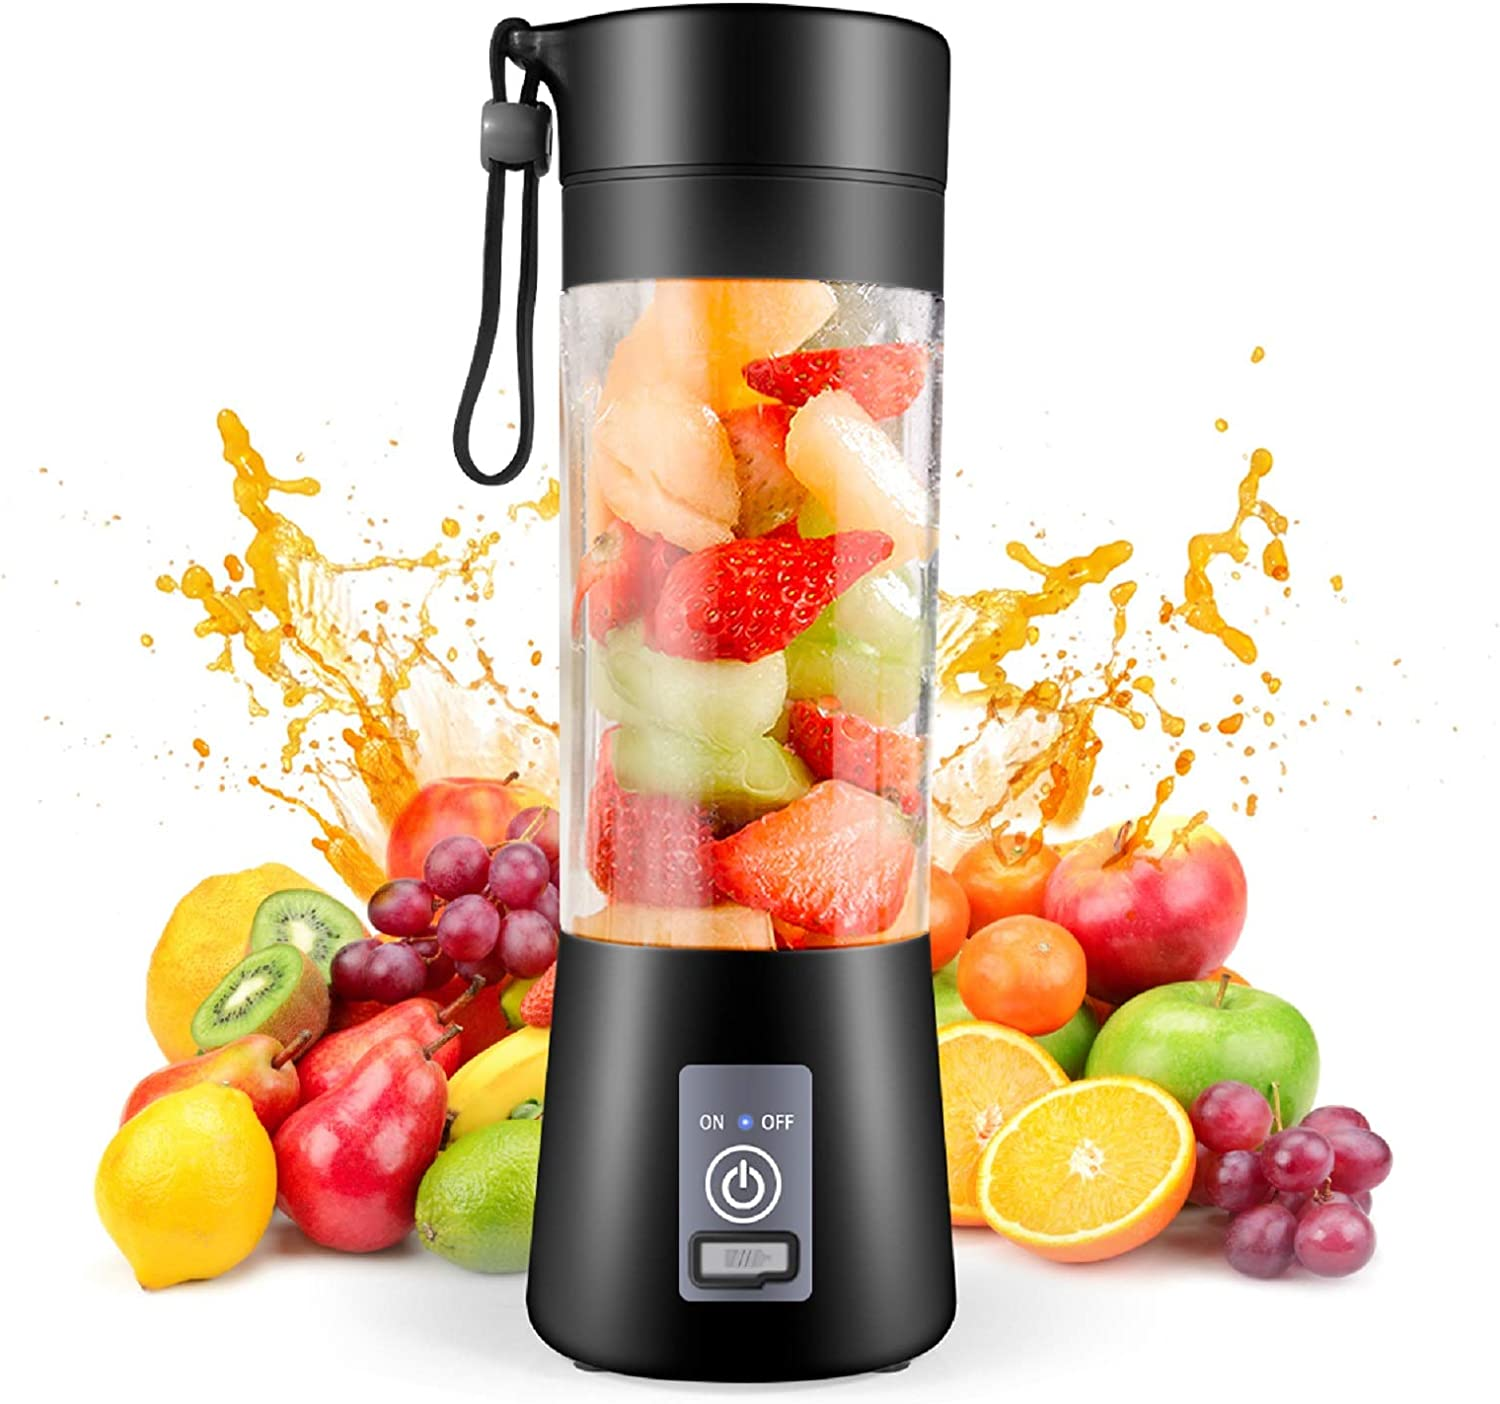 Portable Blender,Personal Blender, Smoothies Mini Jucier Cup USB Rechargeable and Personal Size Blender Shakes,380ml,Fruit Juice,Mixer